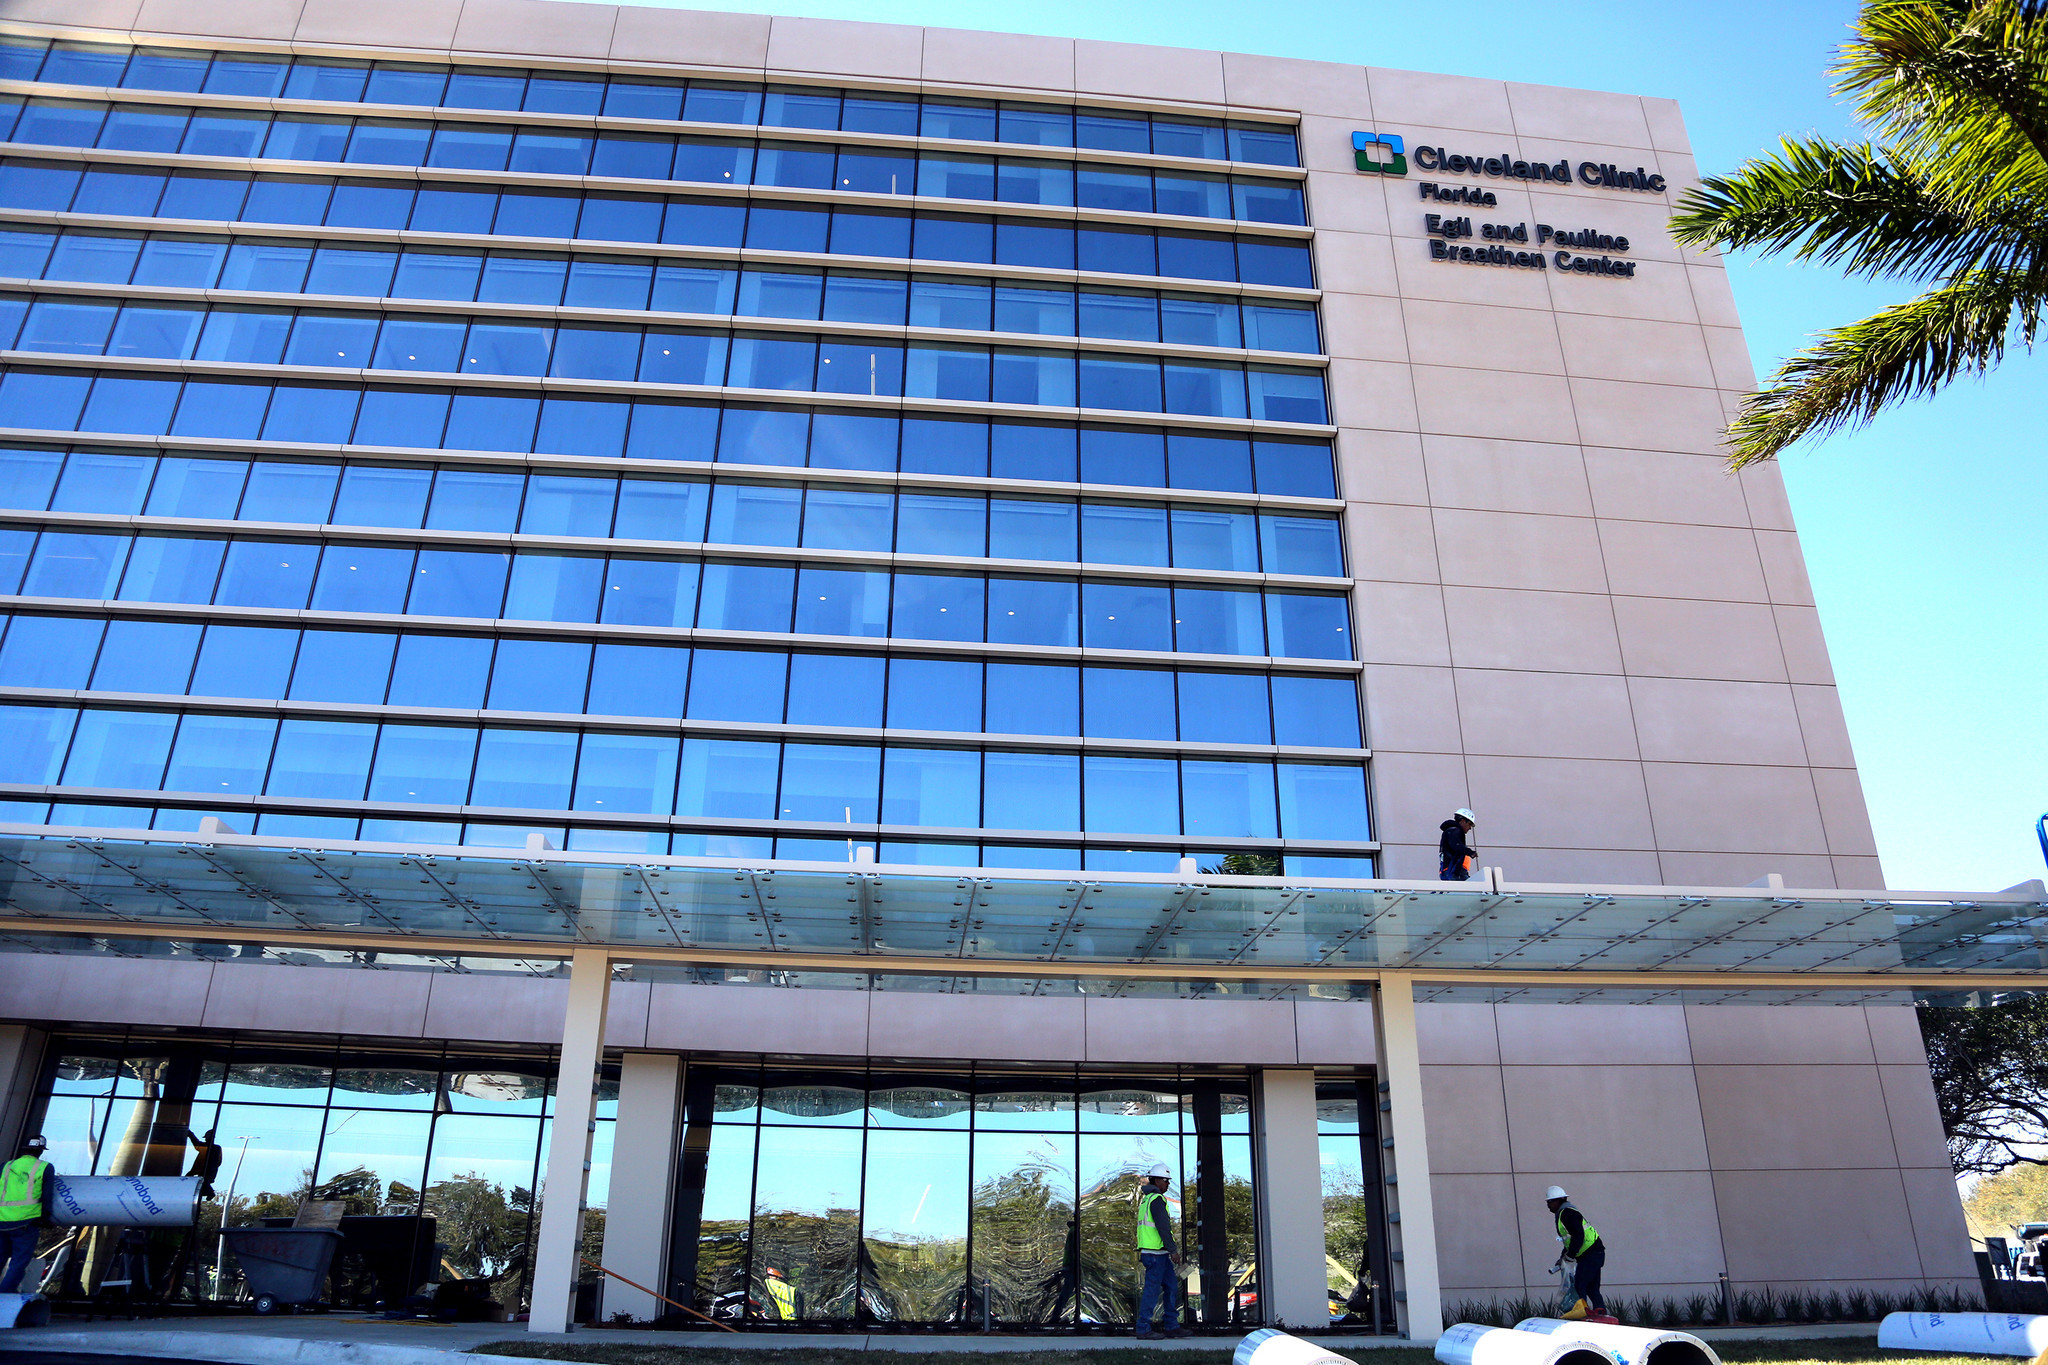 Cleveland Clinic Acquires Cardiology Associates Of Palm Beach